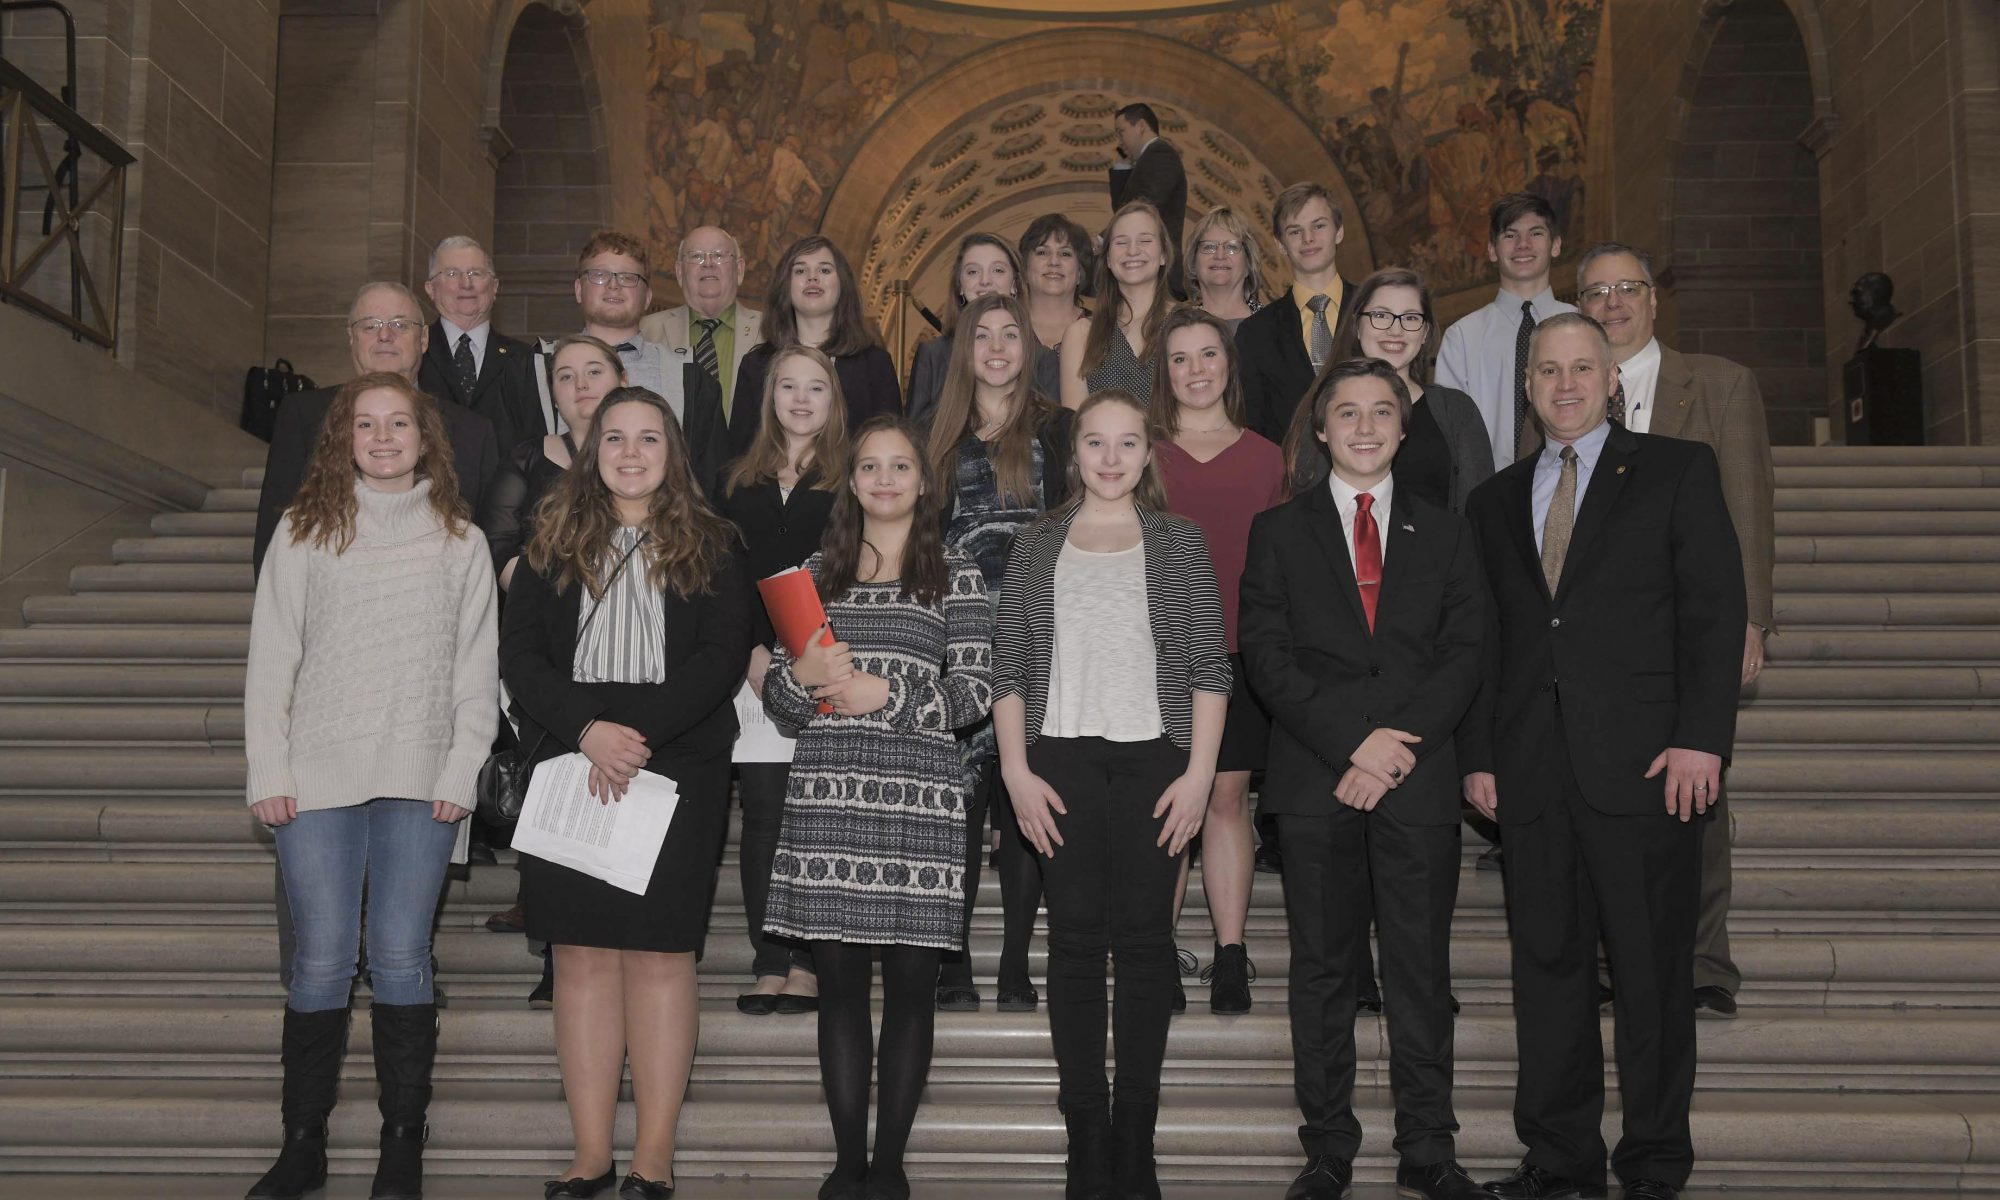 Youth With Vision: Northland